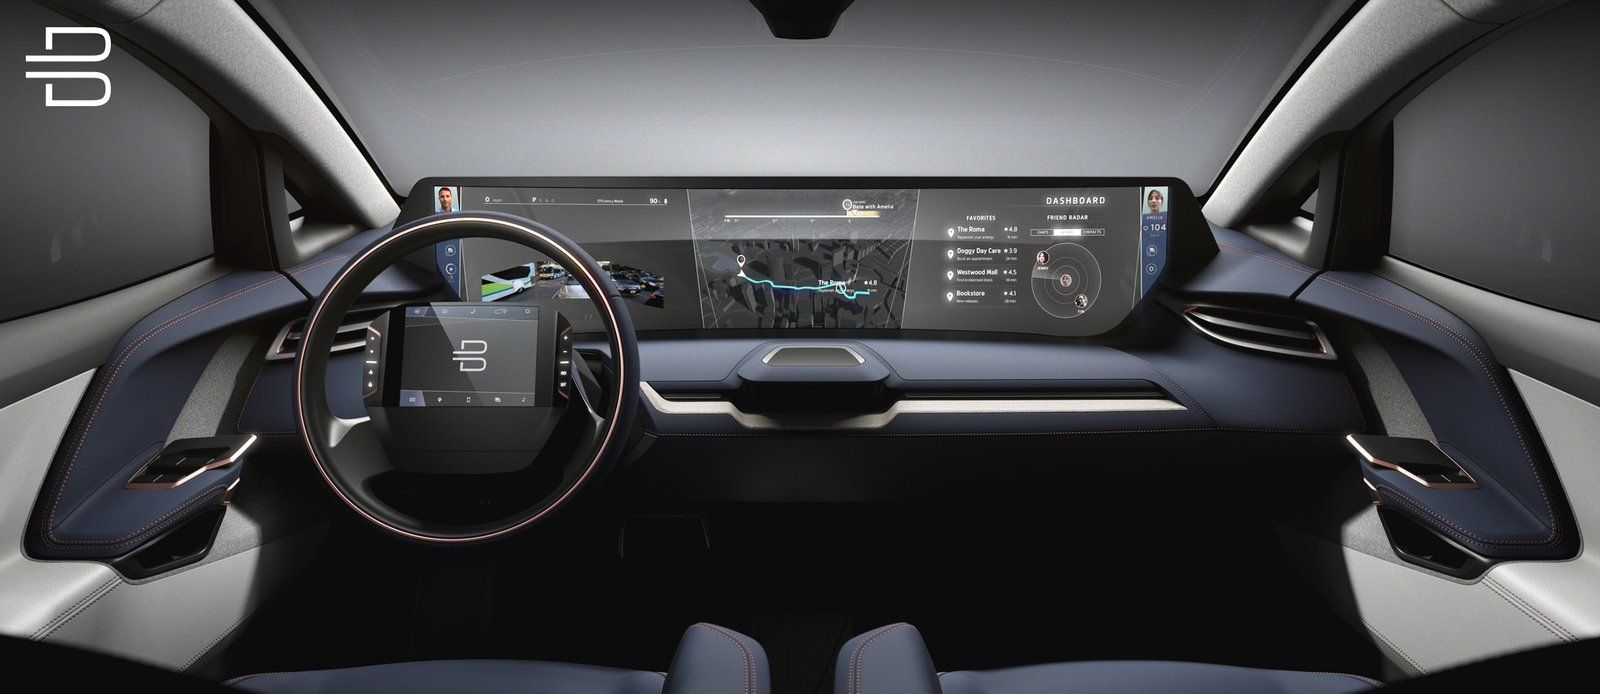 Byton S New Car For Ces Will Feature A Tablet Display In The Weirdest Place Electric Cars Concept Cars Best Compact Suv